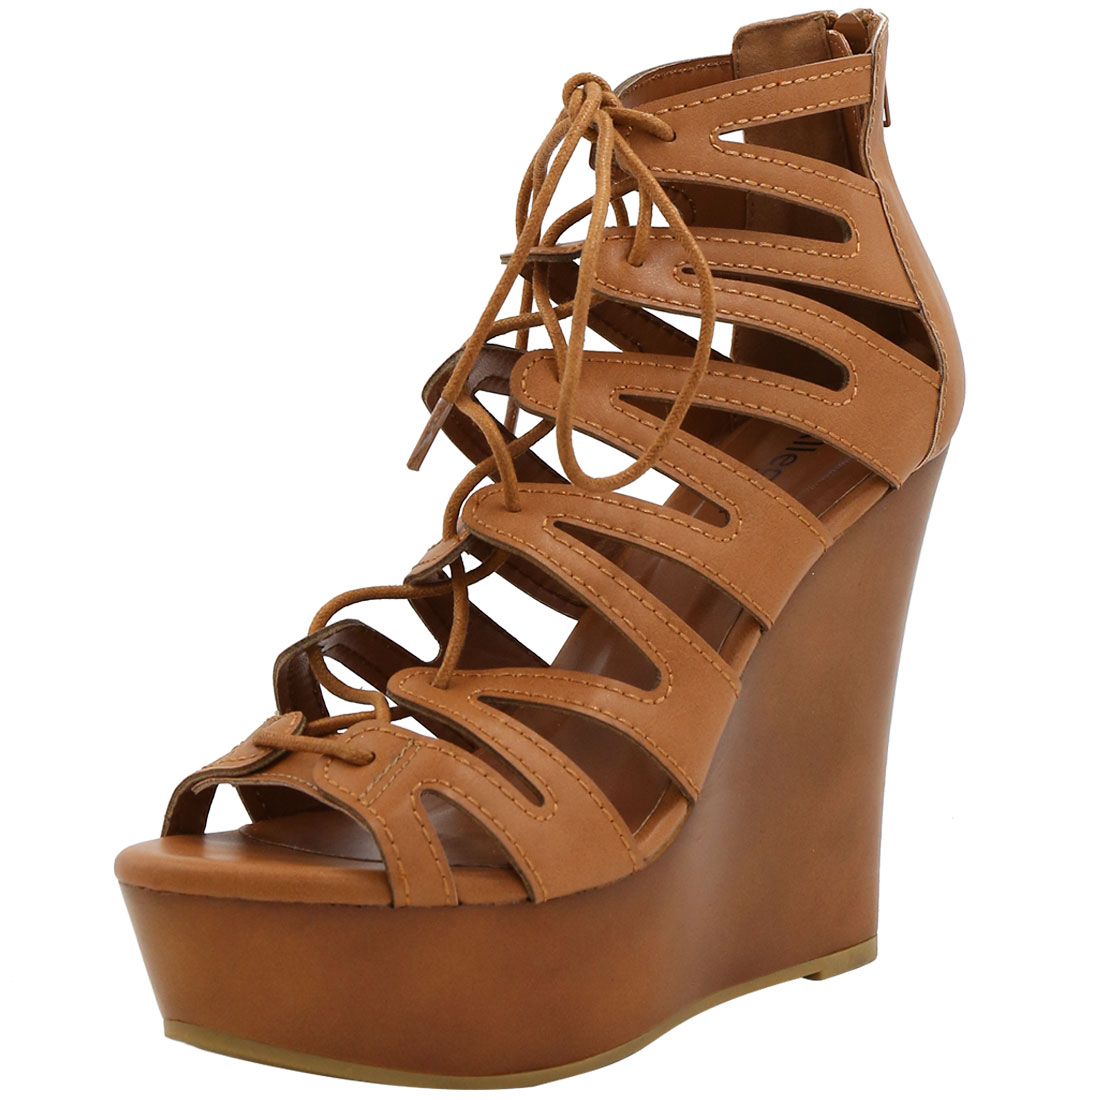 Woman Open Toe Lace-Up Cutout Platform Wedge Sandals Brown US 11